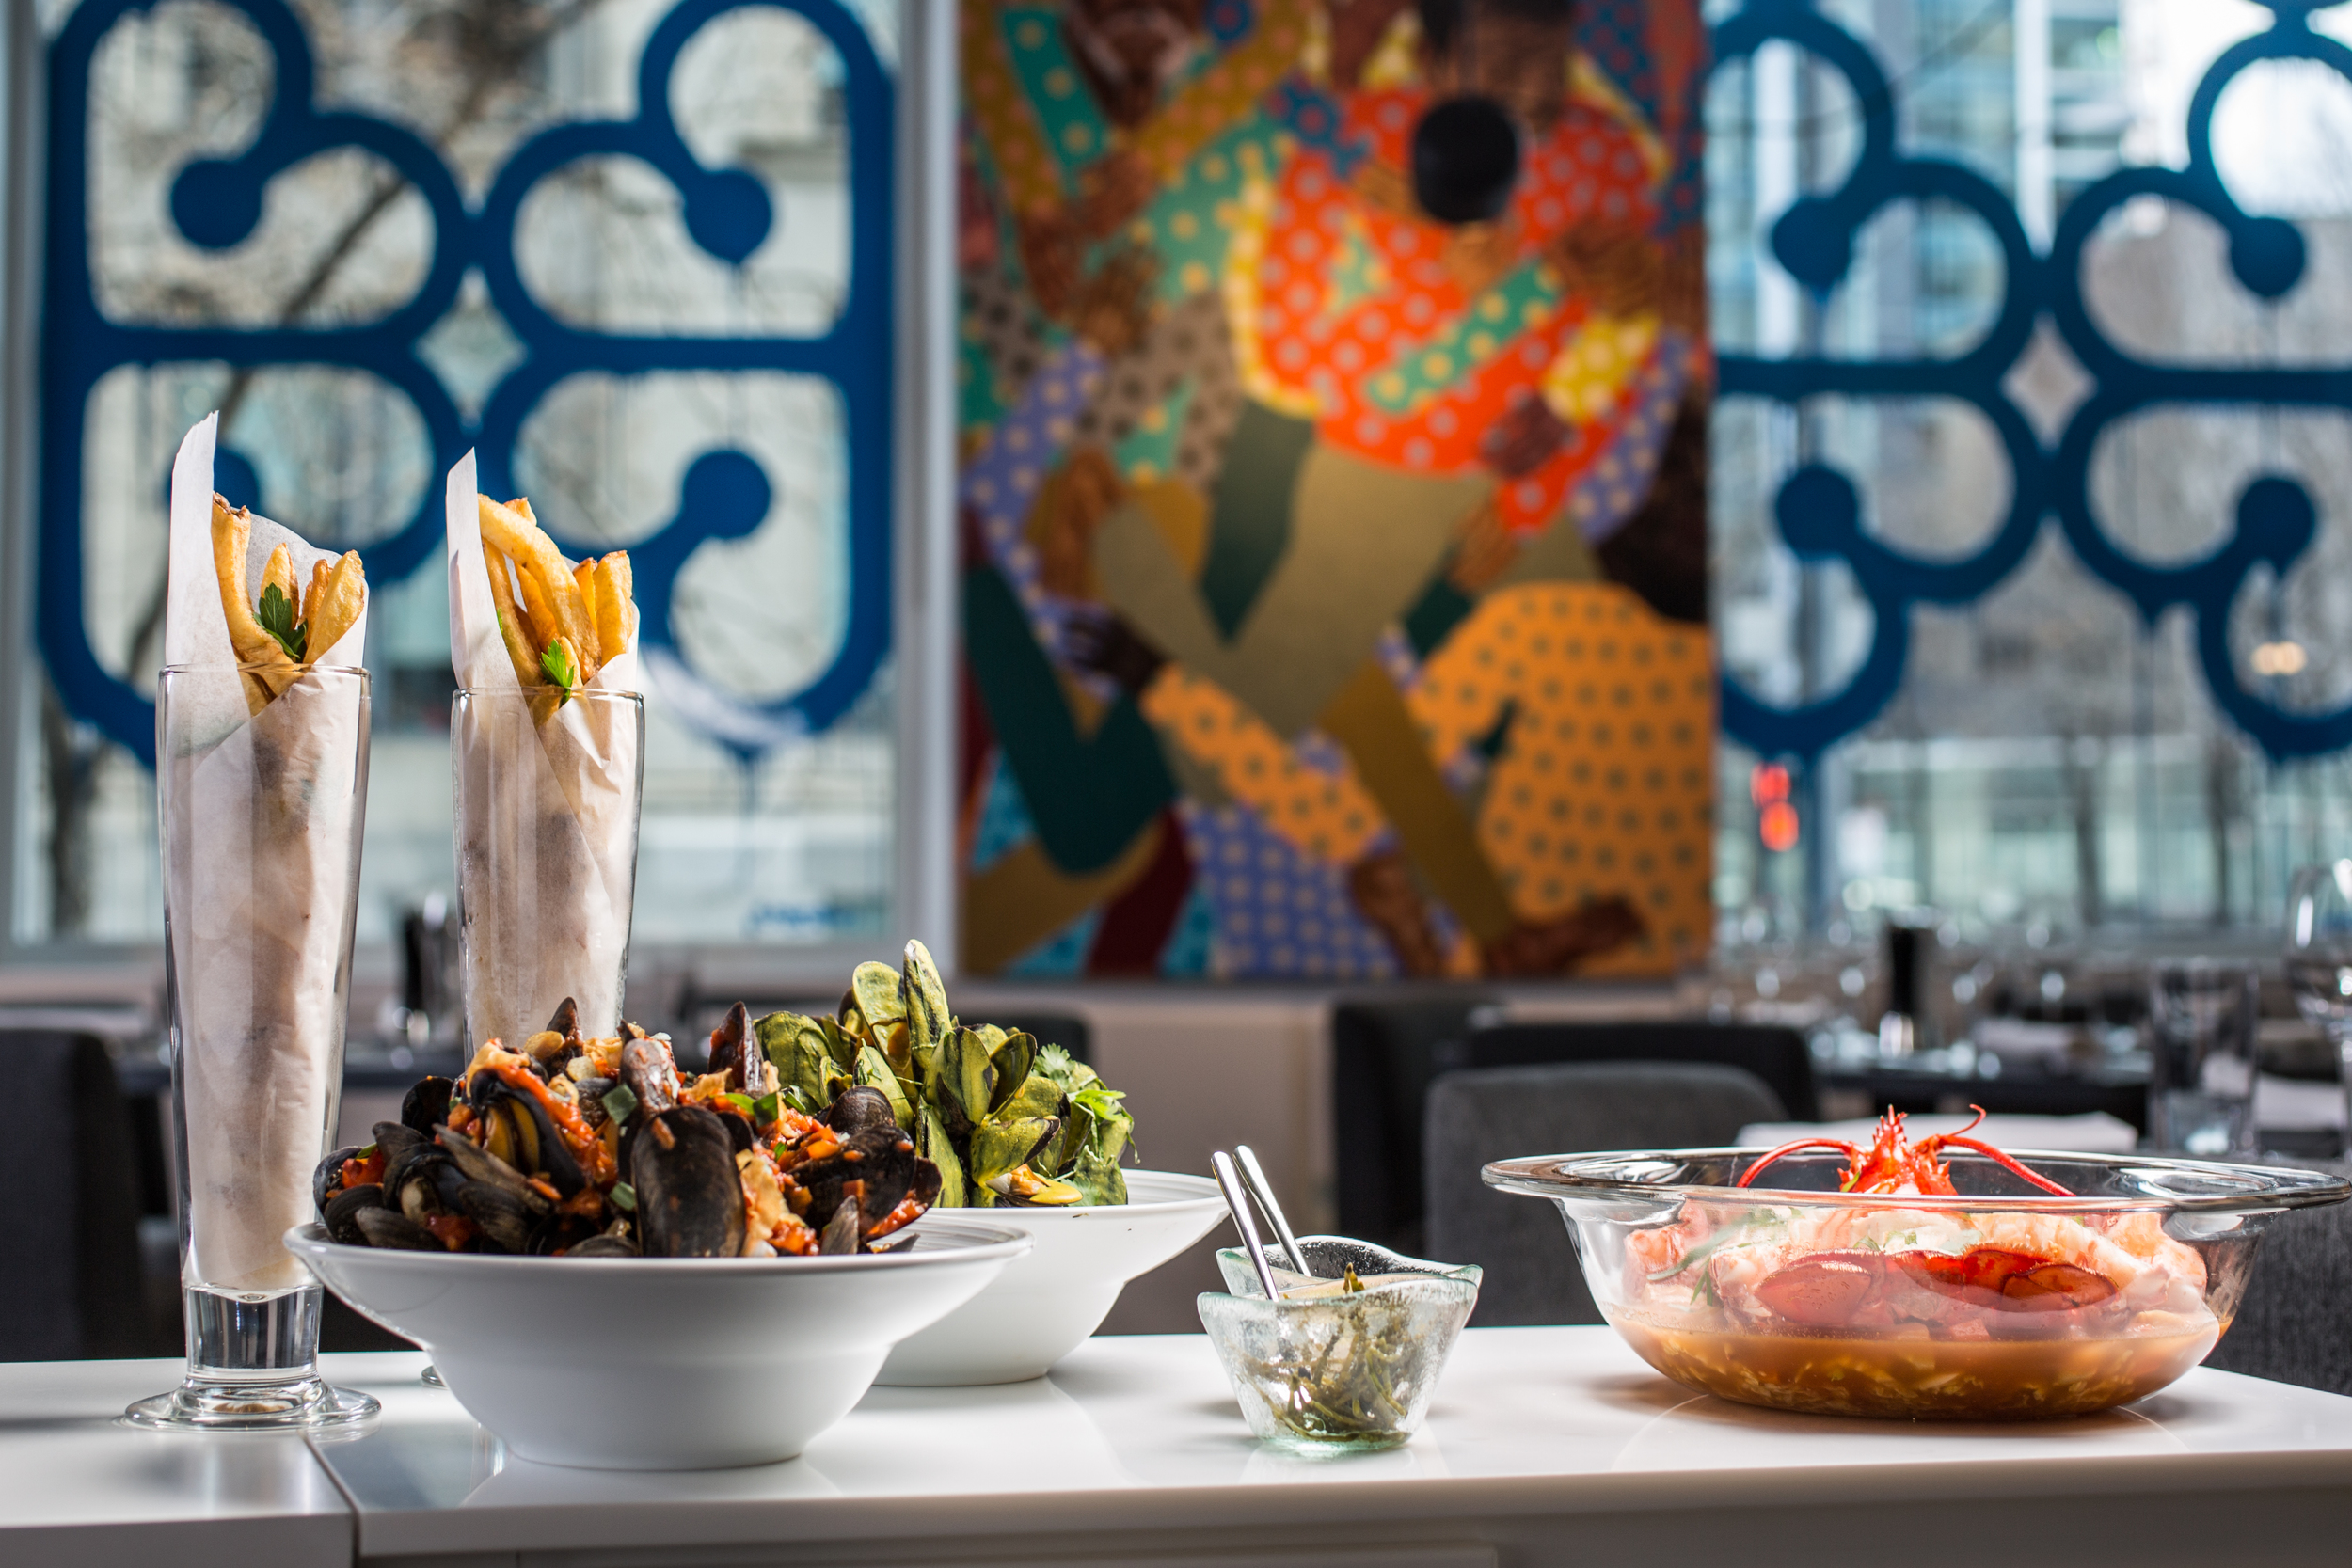 EAT at w hotel montreal by blogger mademoiselle jules mlle